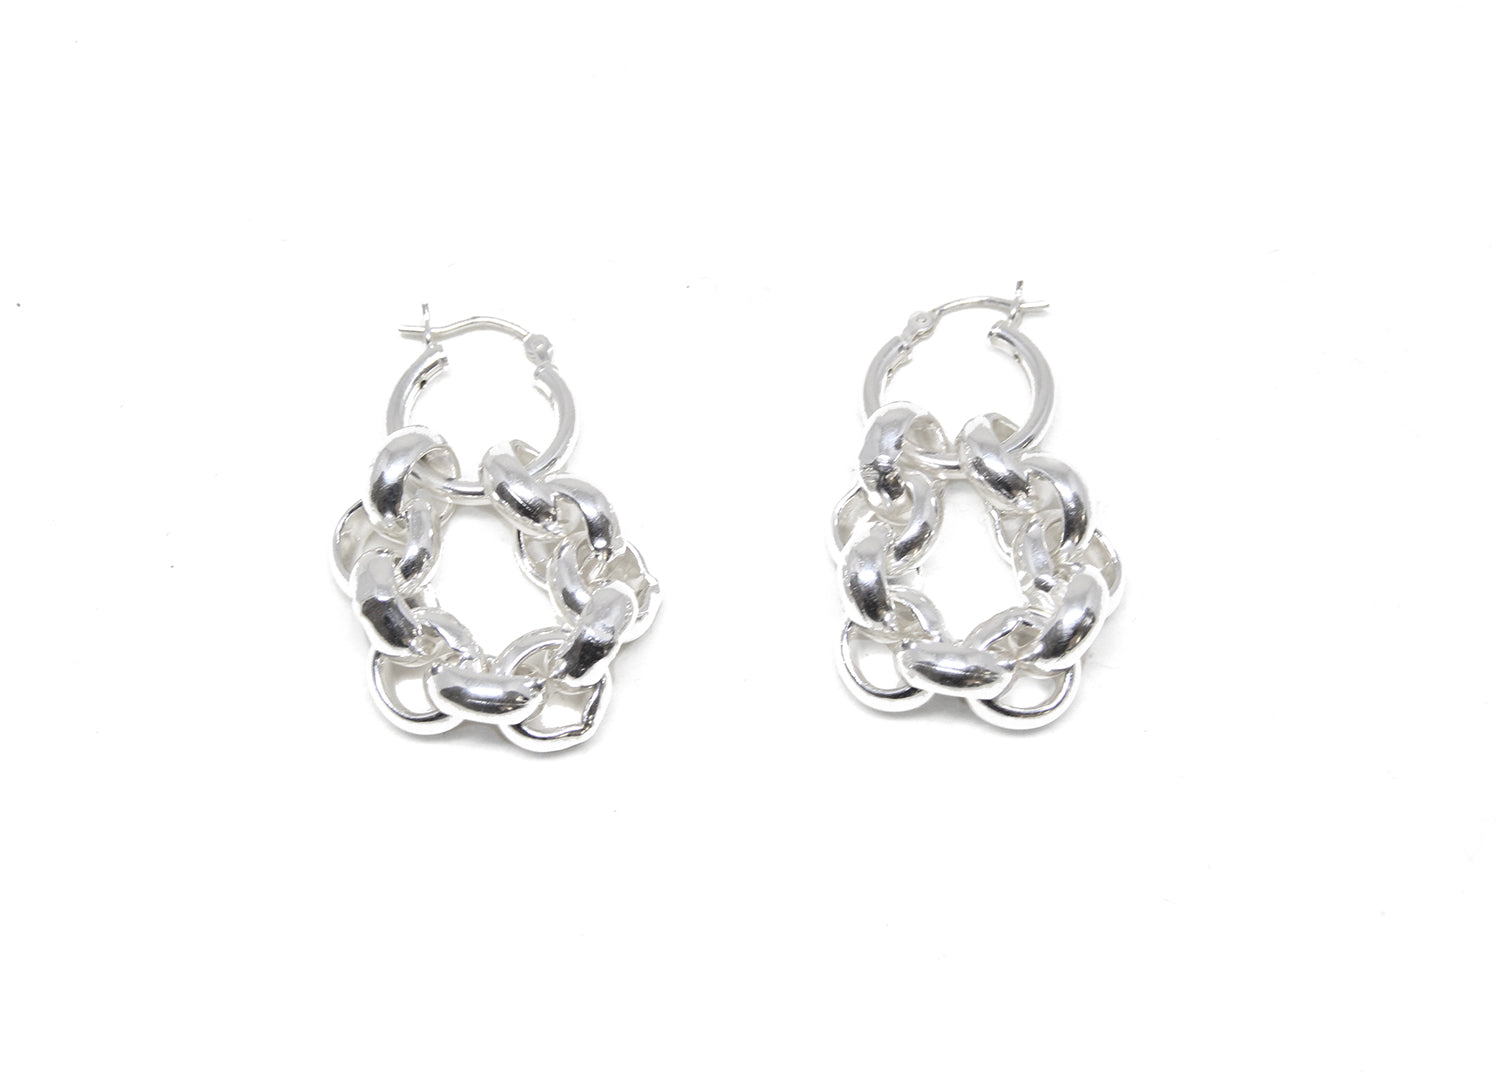 llayers jewelry infinity + interlaced silver hoops earrings- boucles d'oreilles créoles avec cercles entremêlés en argent